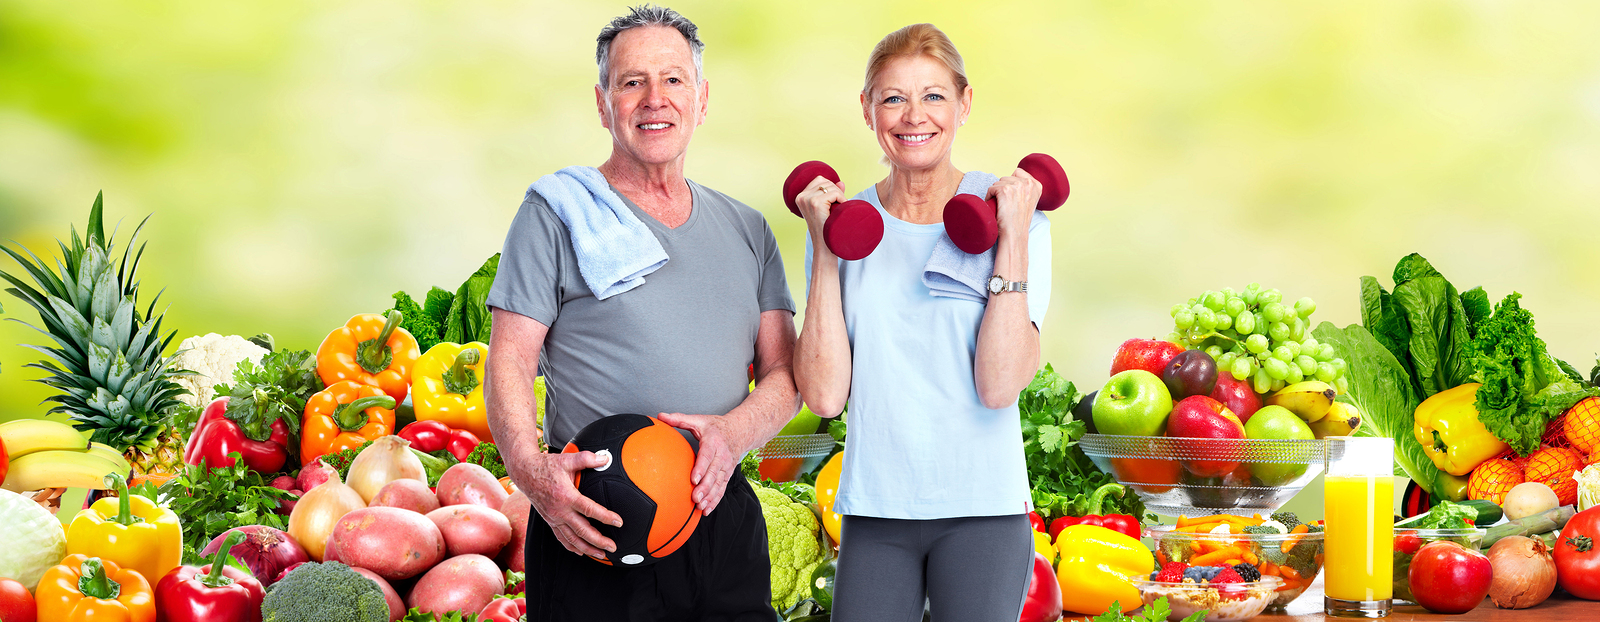 Healthy senior couple over fresh fruits and vegetables background.